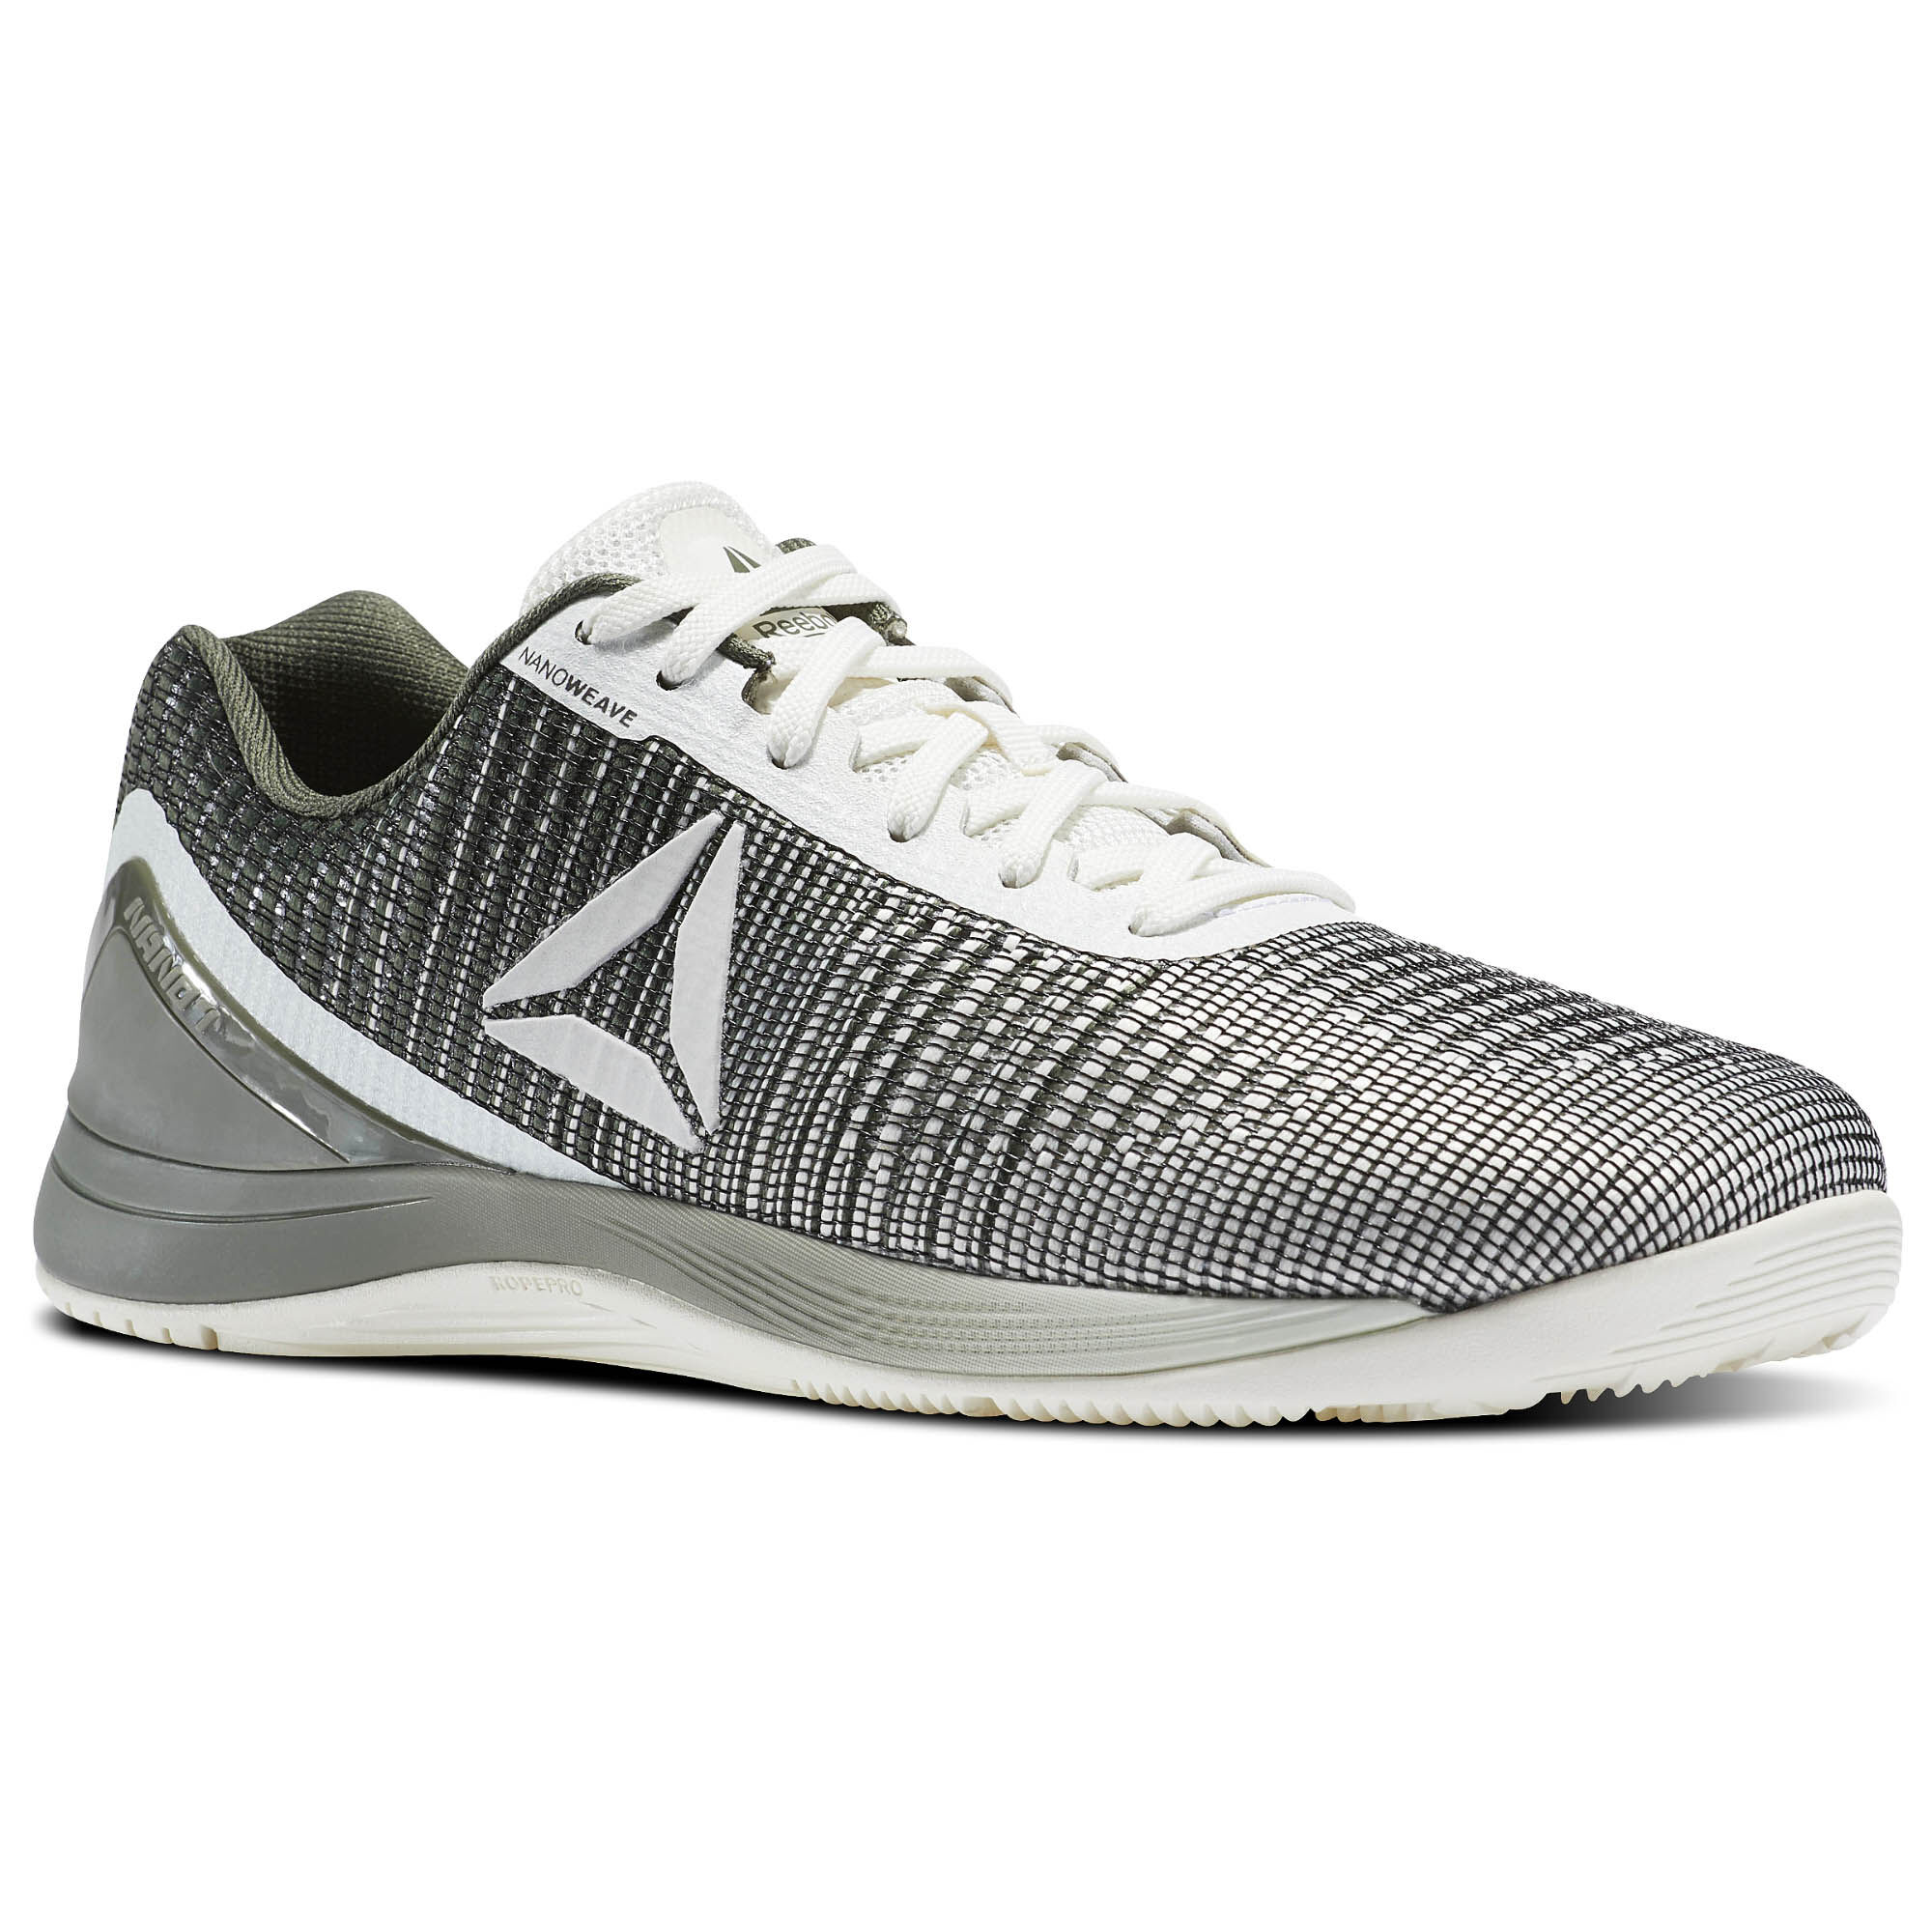 Jj Watt Reebok Shoes Sales